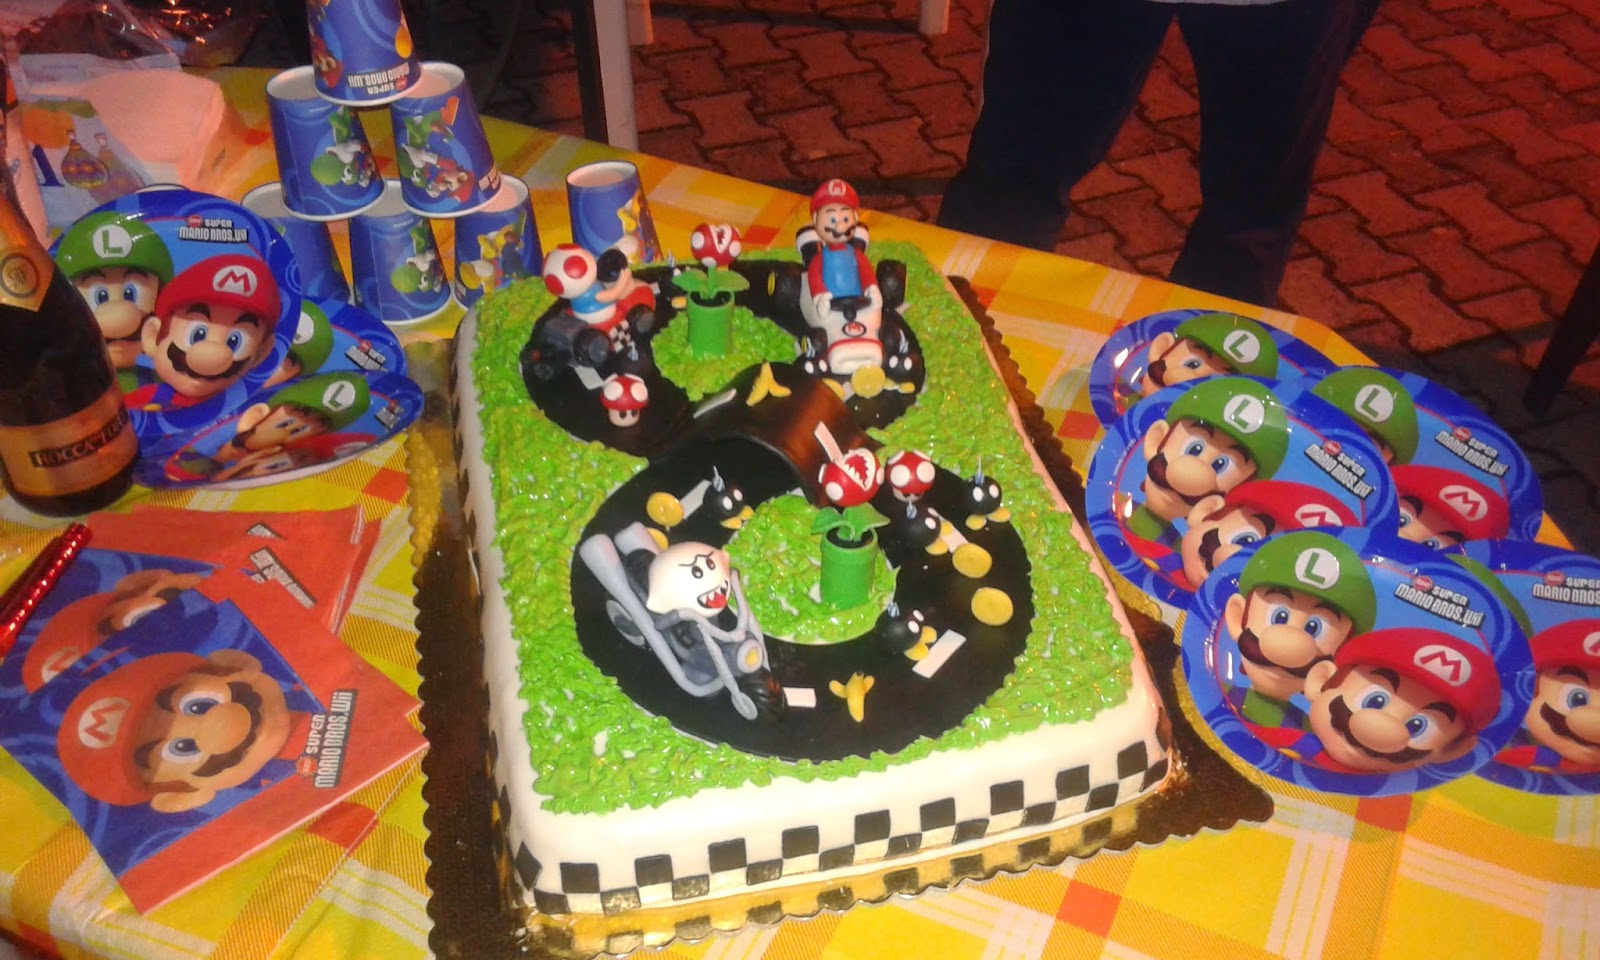 art sugar crystals torta super mario kart pdz. Black Bedroom Furniture Sets. Home Design Ideas